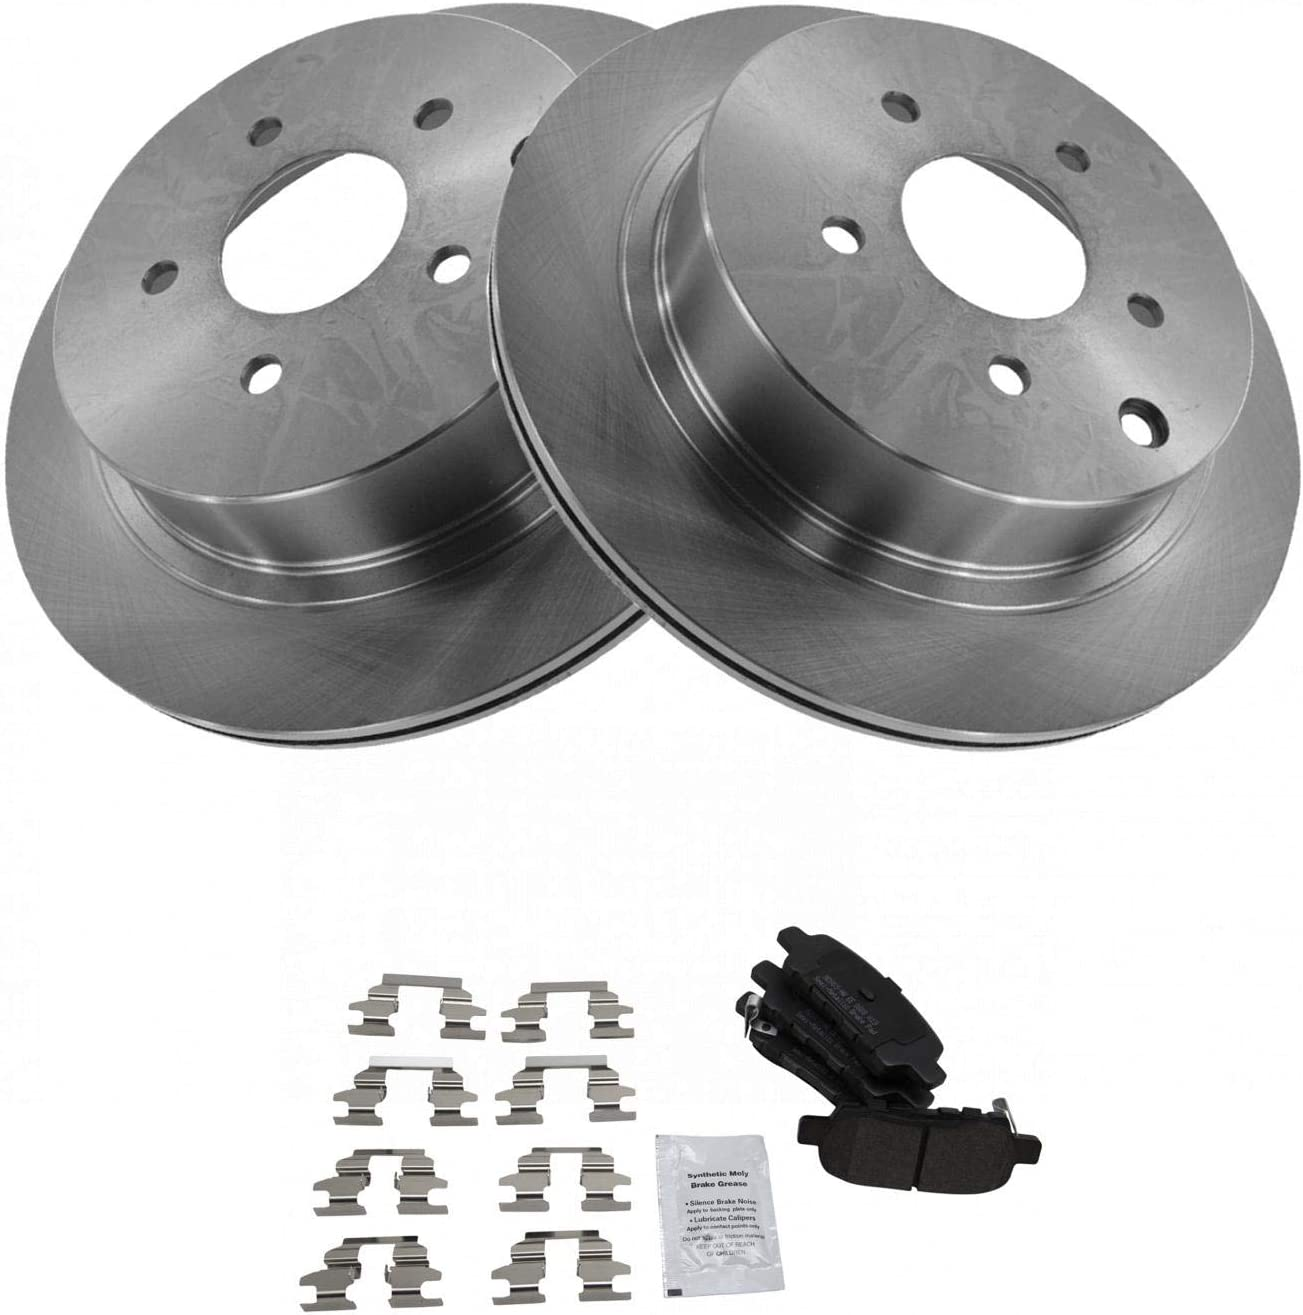 Front Premium Posi Metallic Disc Brake Pad Kit for Nissan Suzuki